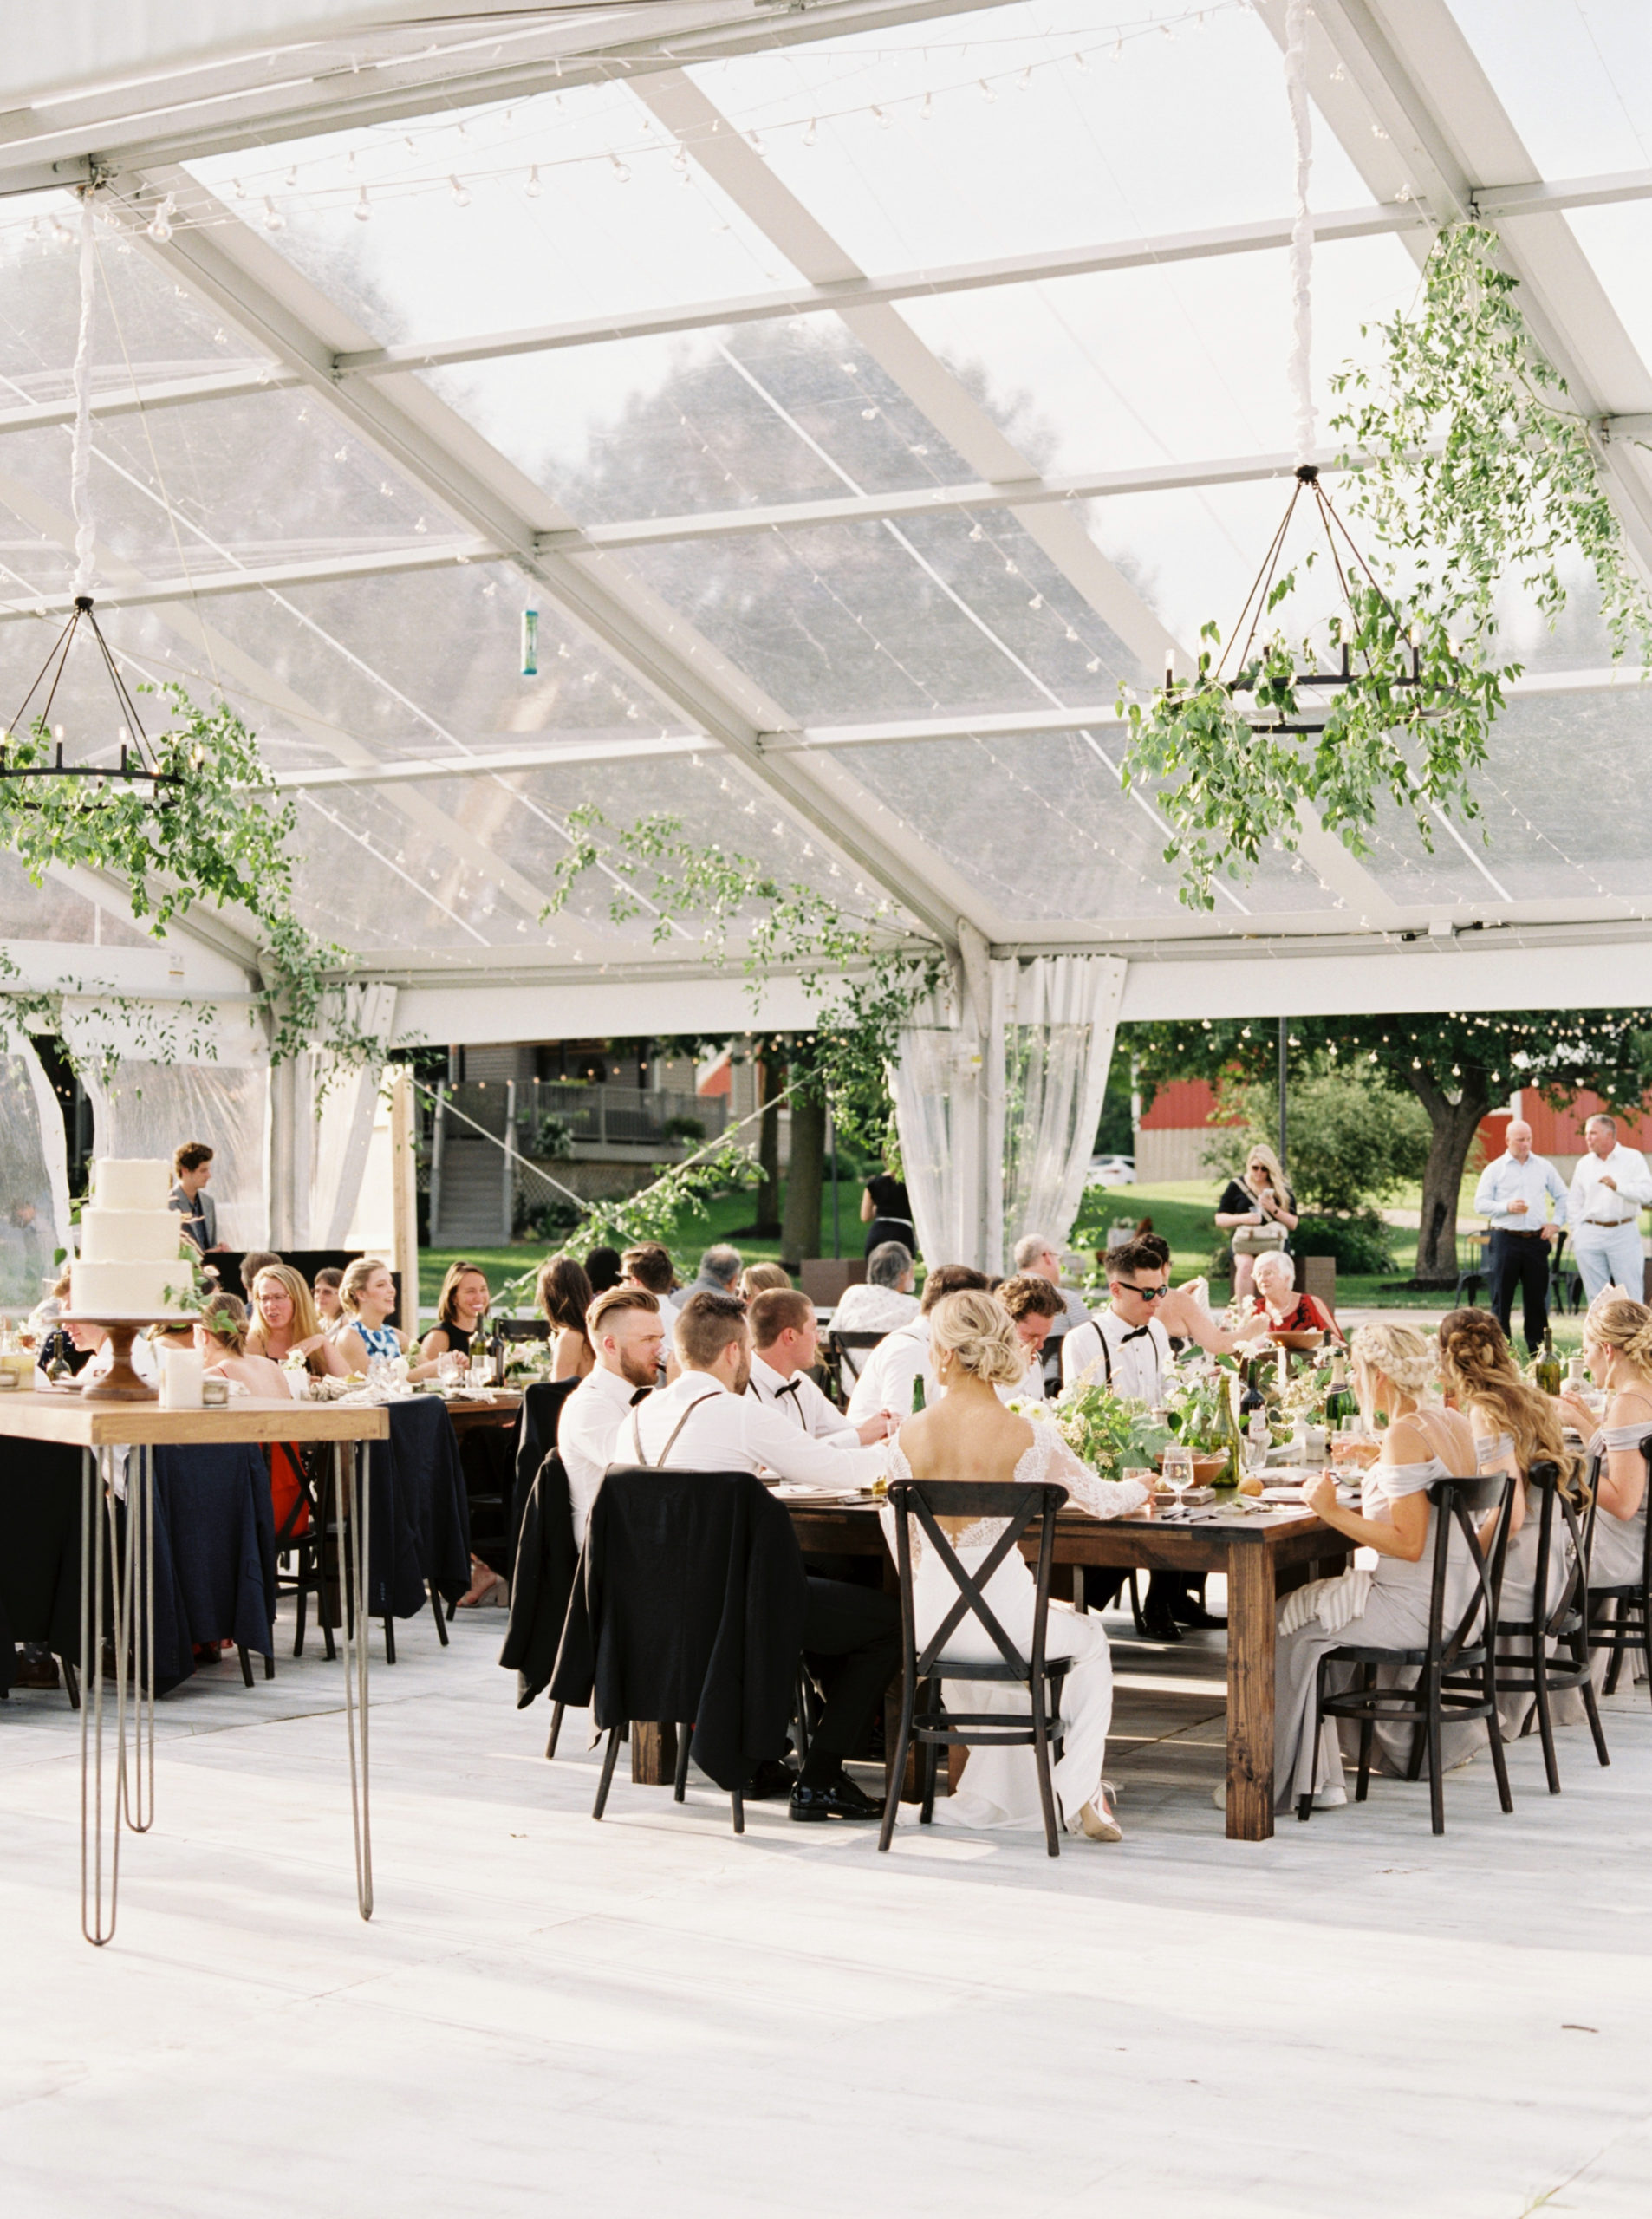 Tips for Hosting a Tented Celebration